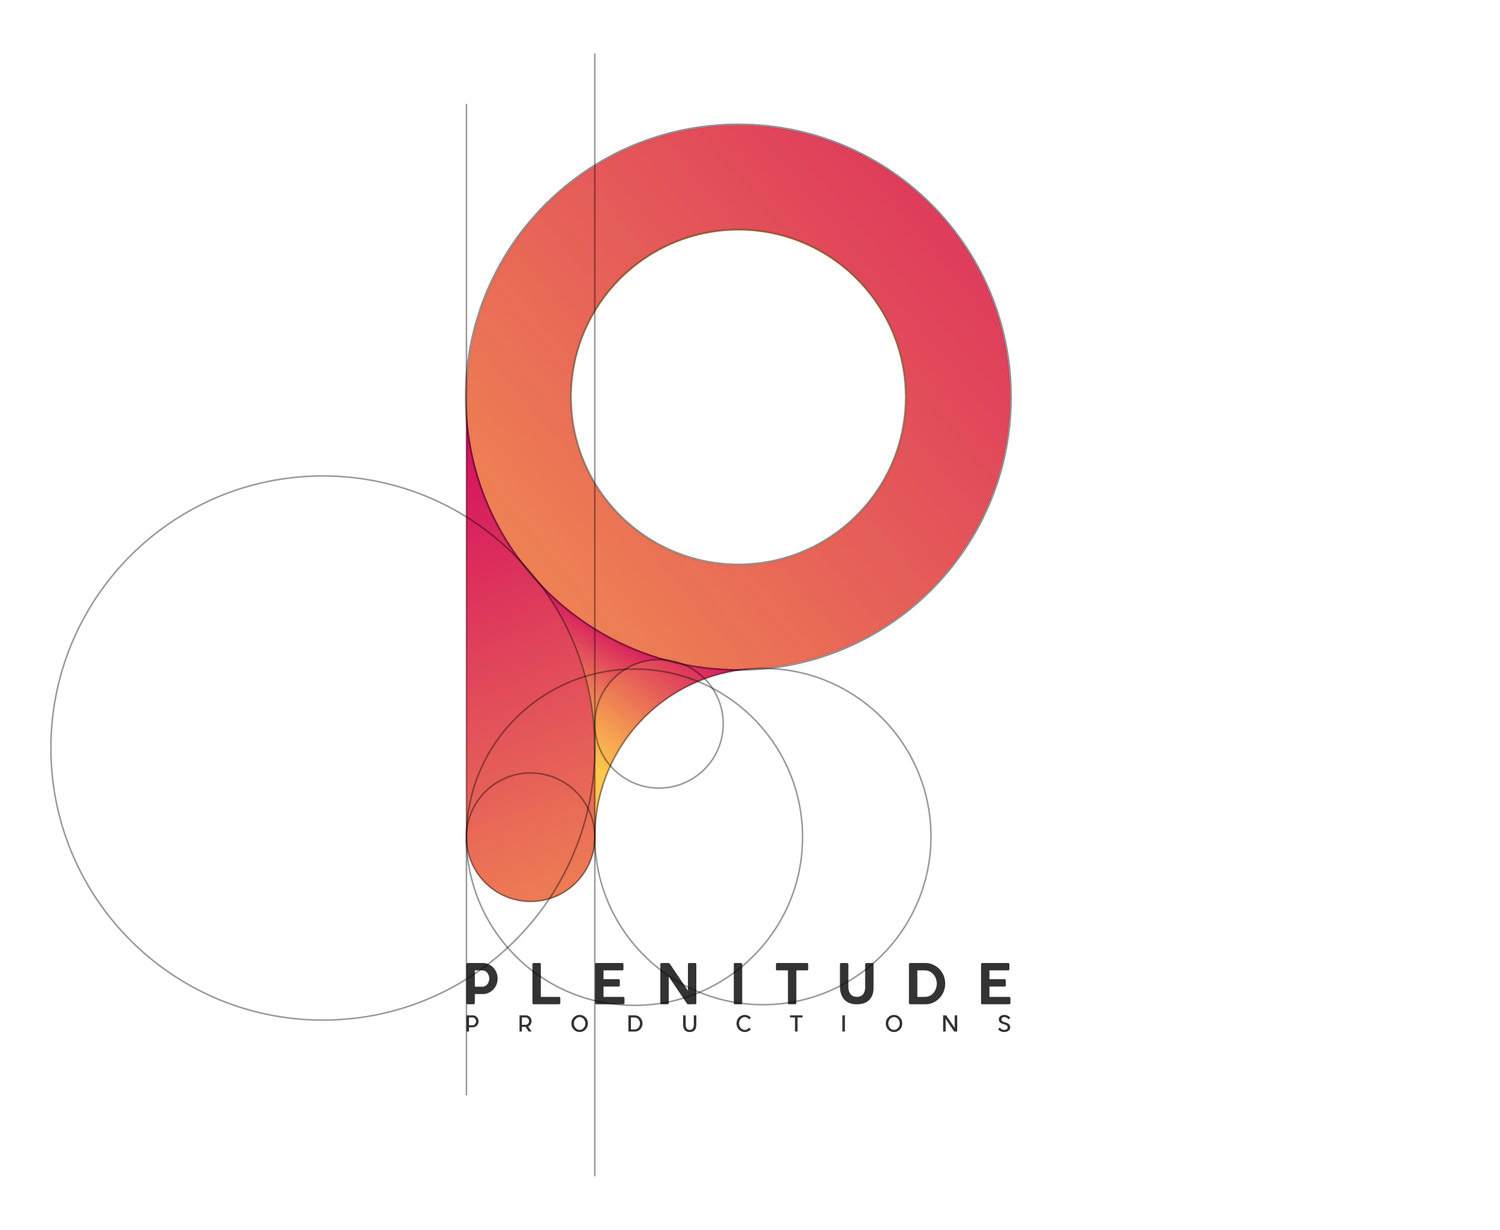 Plenitude Productions